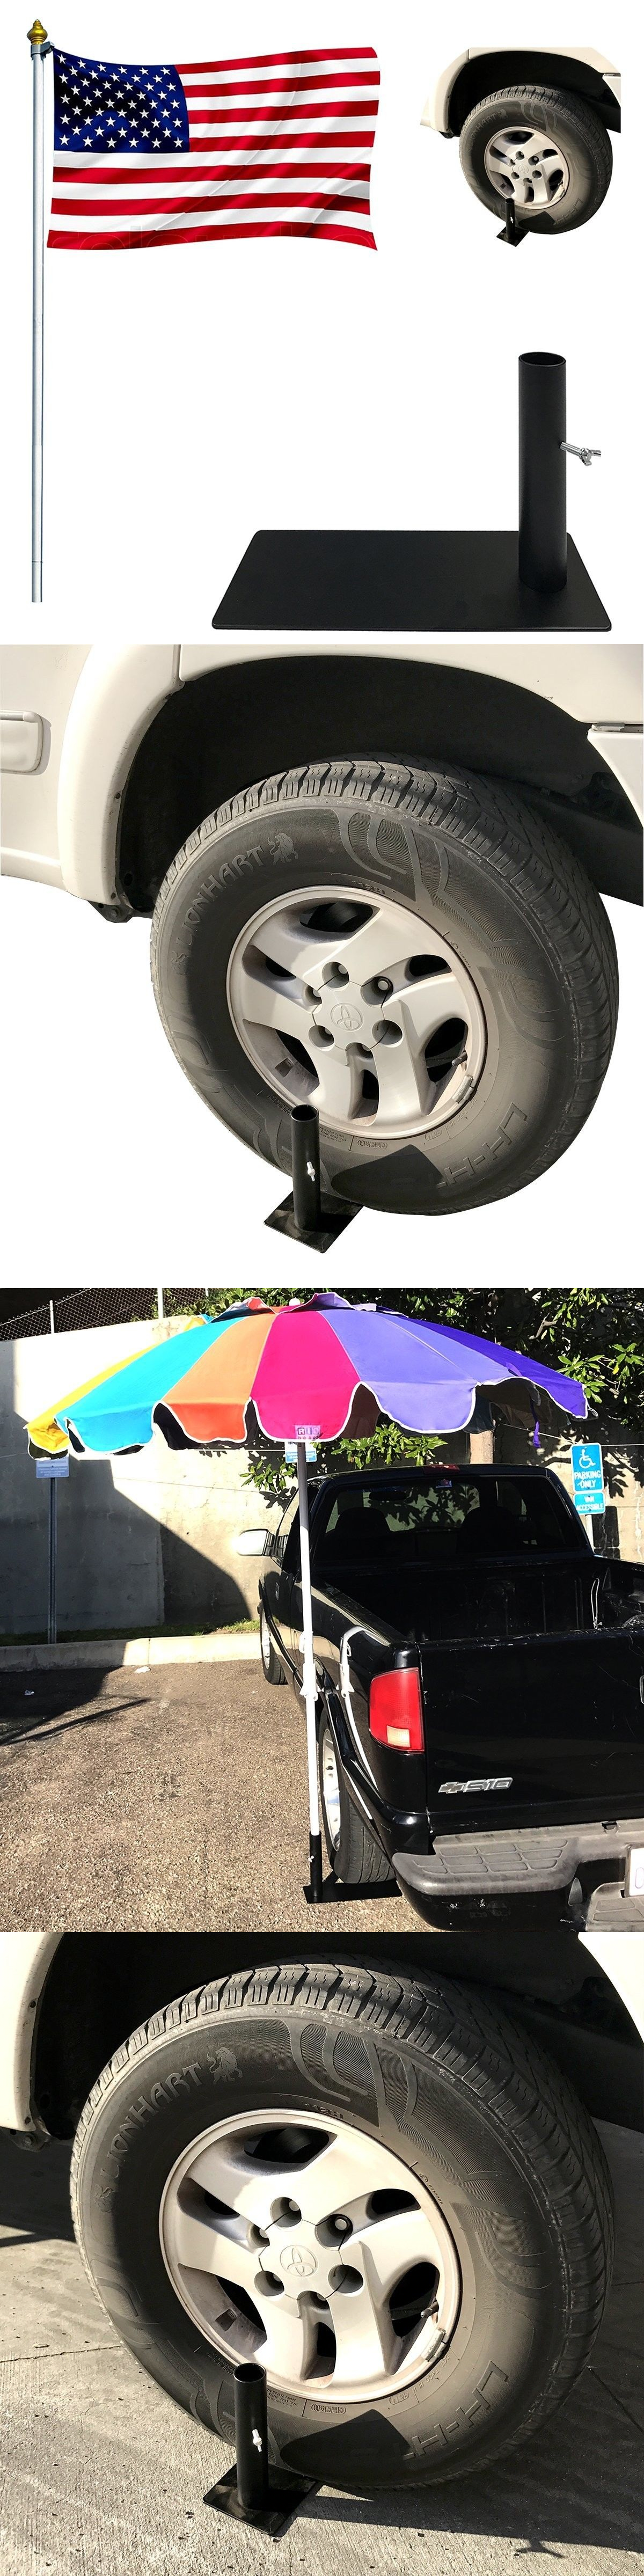 Flag Poles and Parts Tire Mount Flag Pole Holder Tailgate